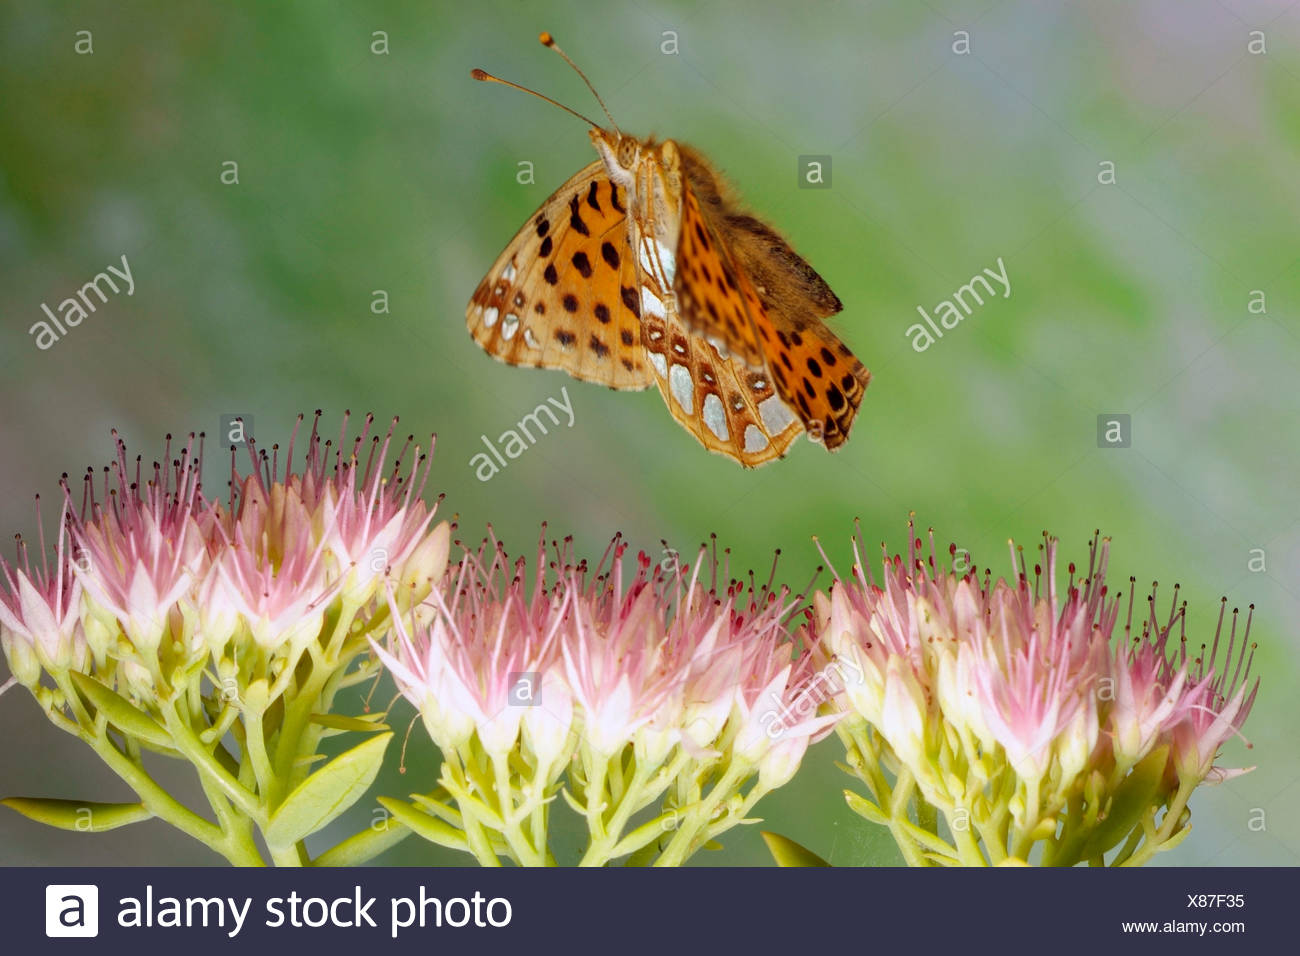 Queen of Spain Fritillary (Issoria lathonia) - Stock Image